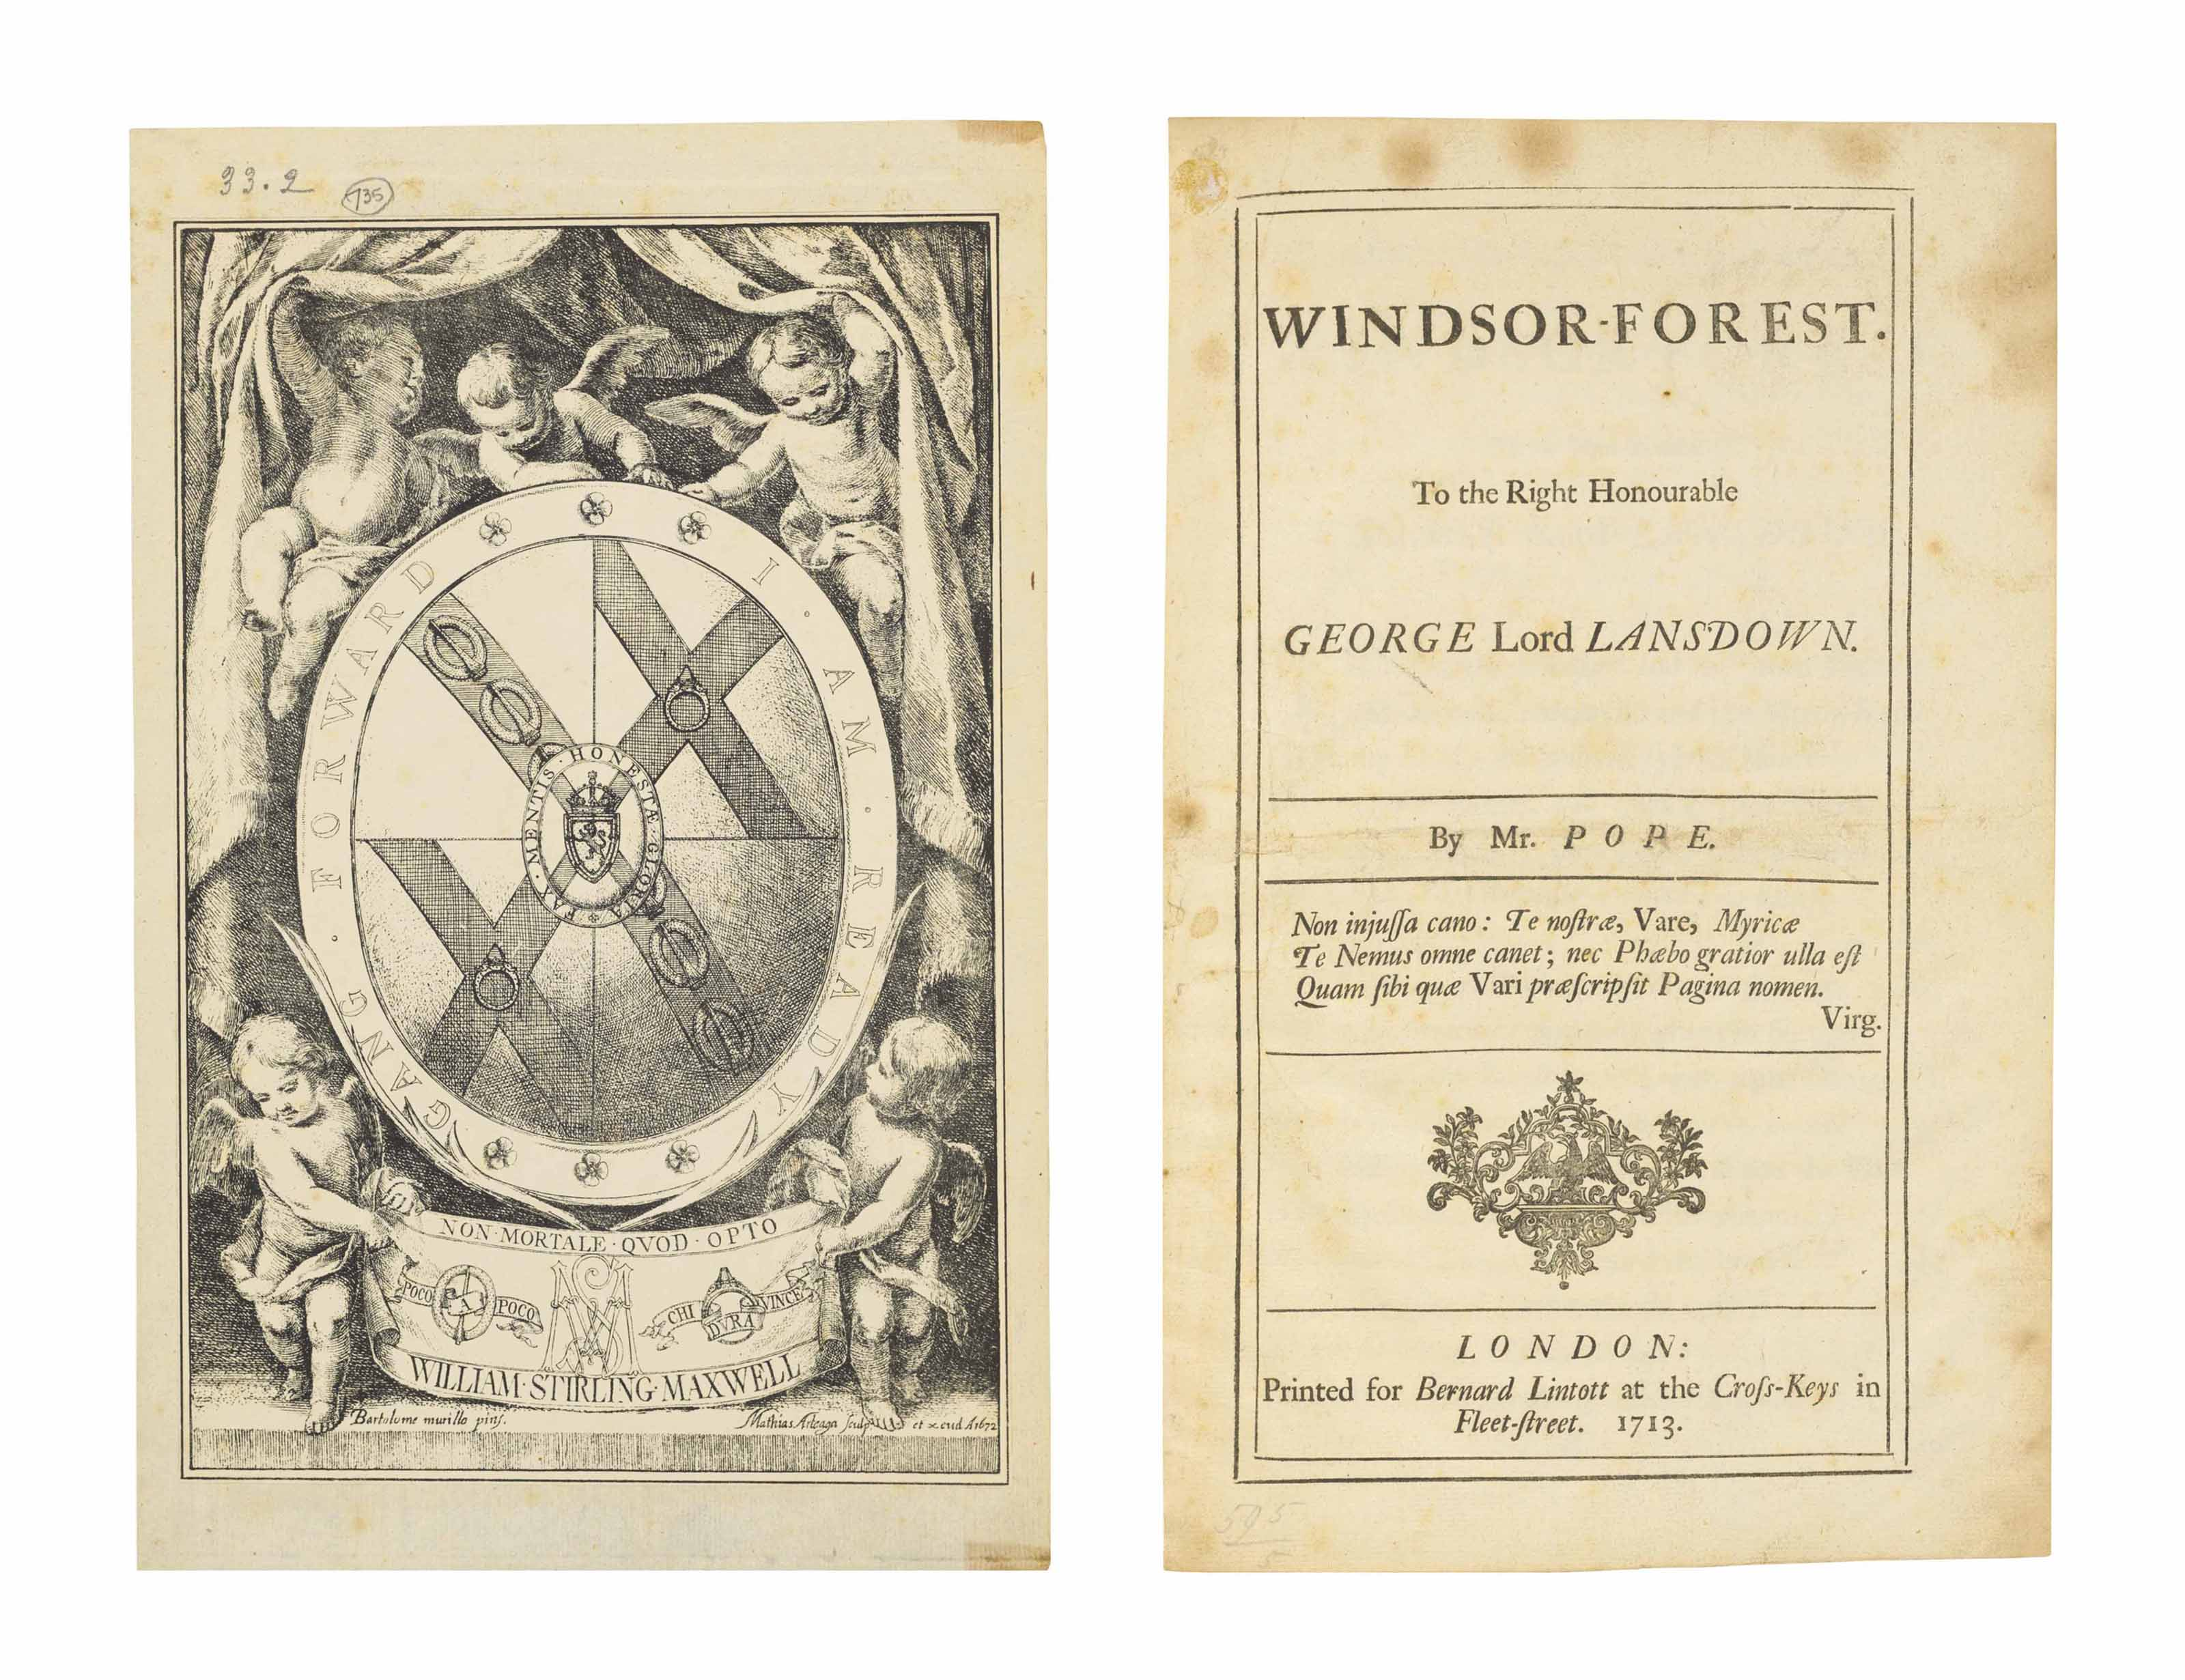 POPE, Alexander. Windsor-Forest. To the Right Honourable George Lord Lansdown. London: Bernard Lintott, 1713.